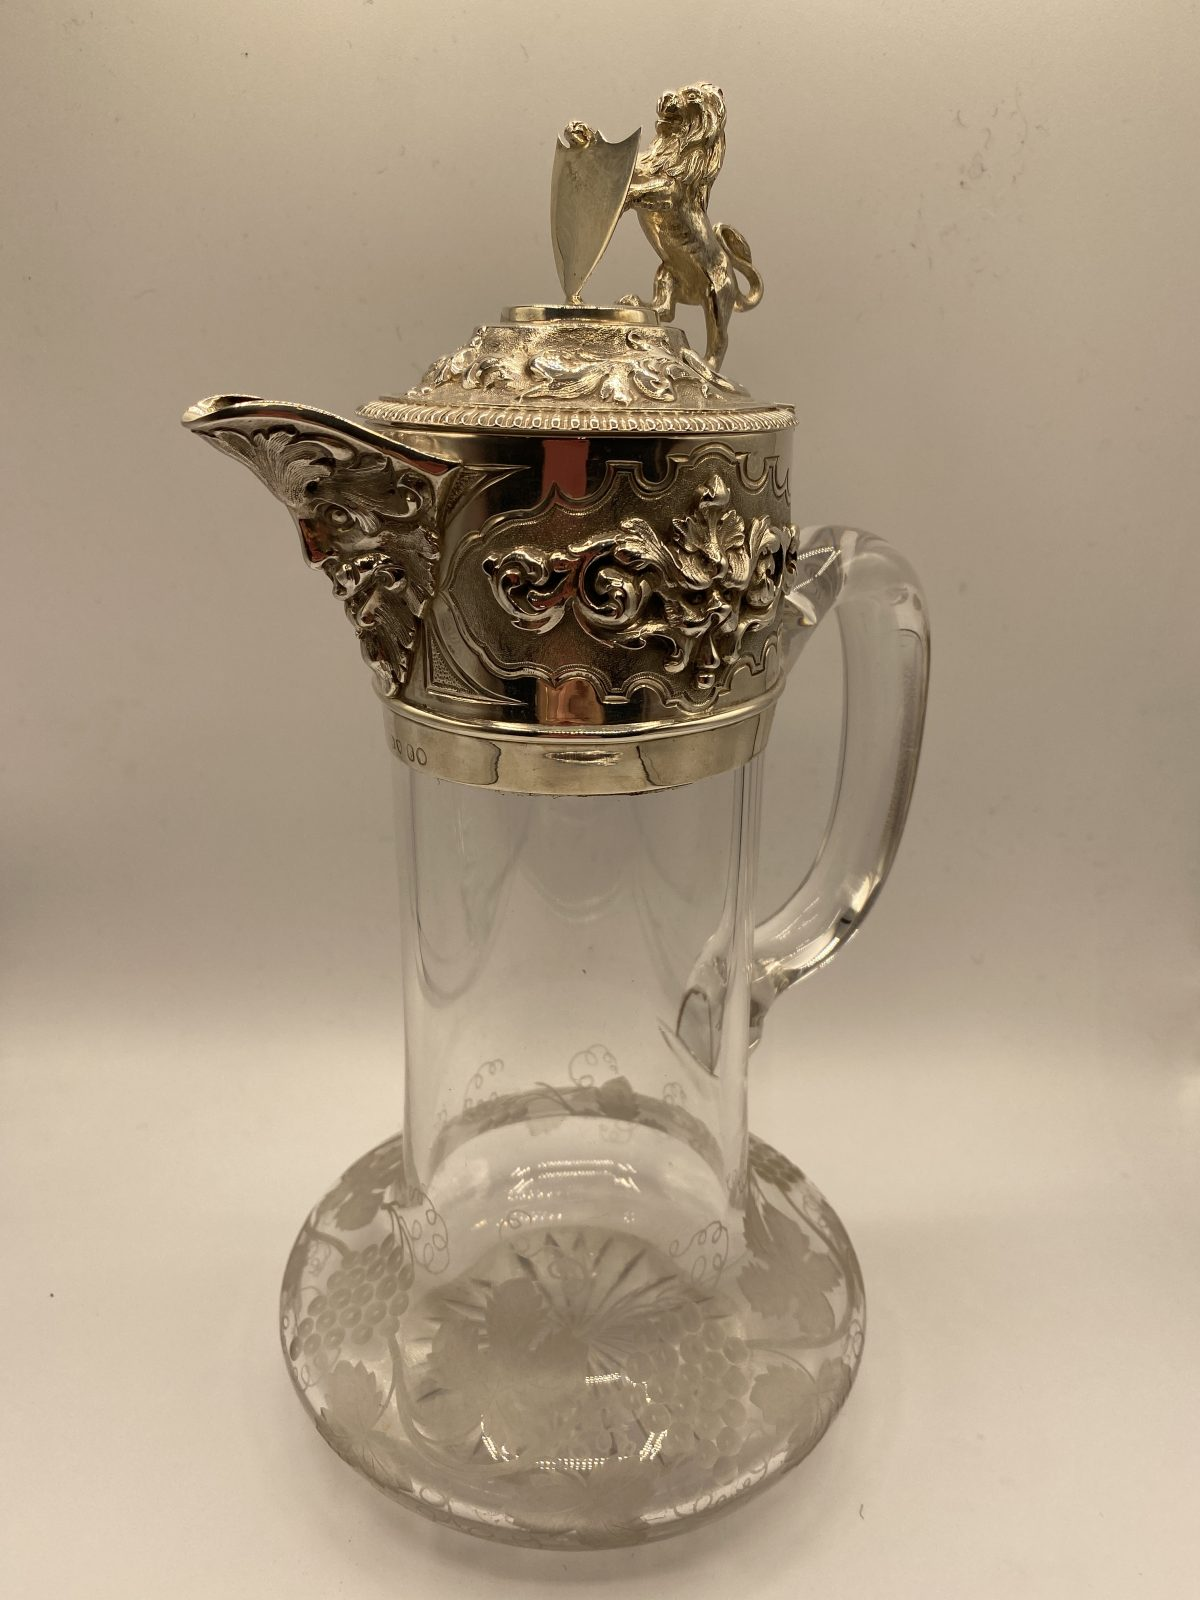 CAB 14 - A Fine Victorian Claret Jug with Silver Mount, London 1863.  £1,175